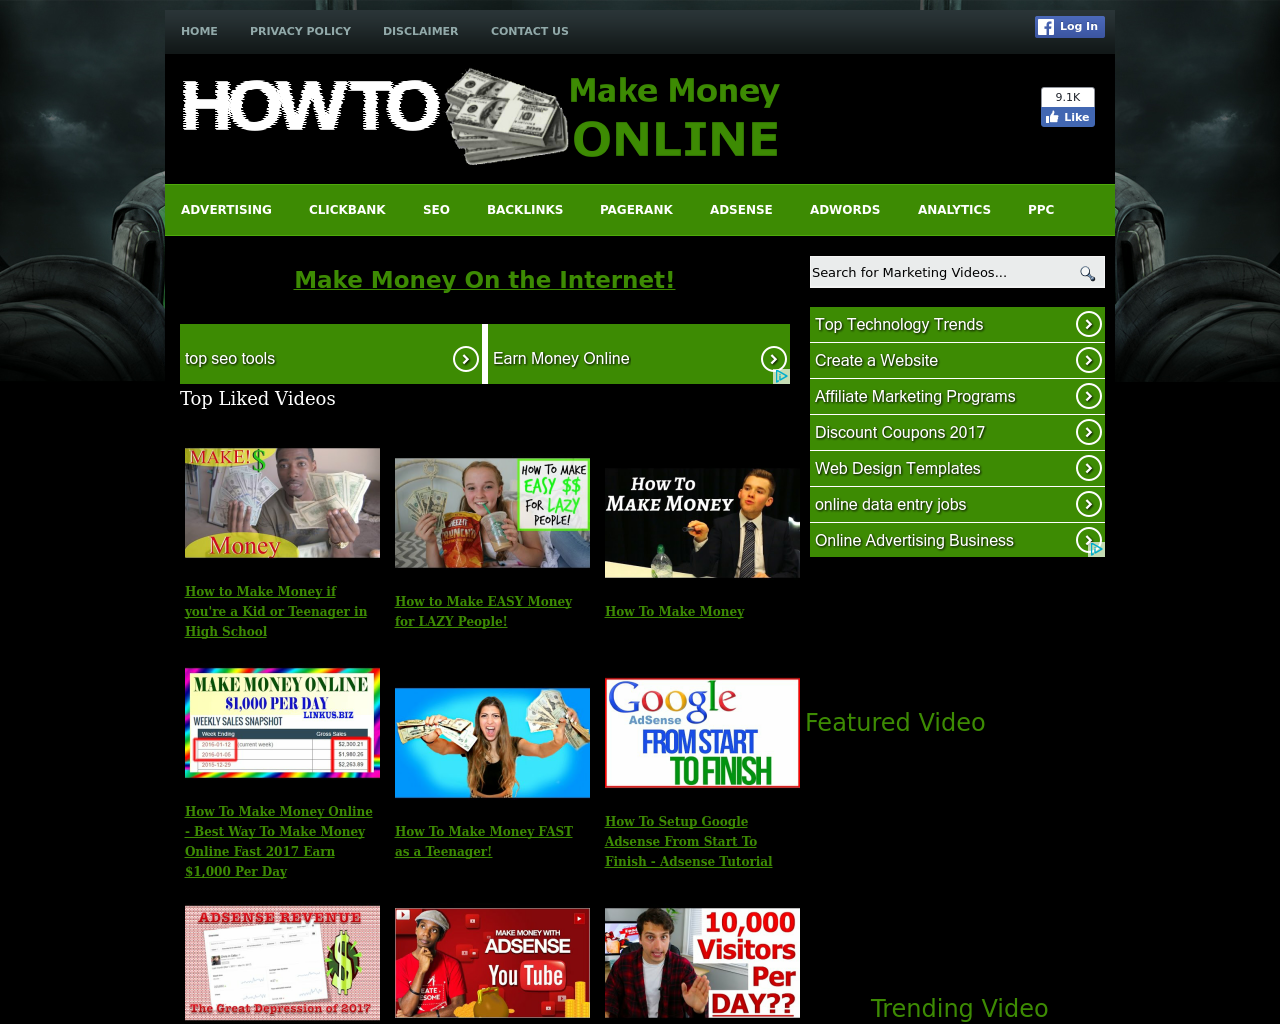 How-To-Make-Money-Online-Advertising-Reviews-Pricing